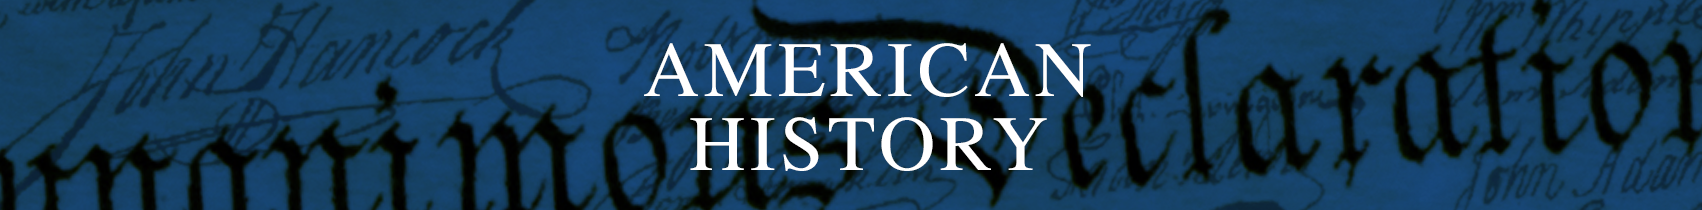 ABC-CLIO Solutions - American History